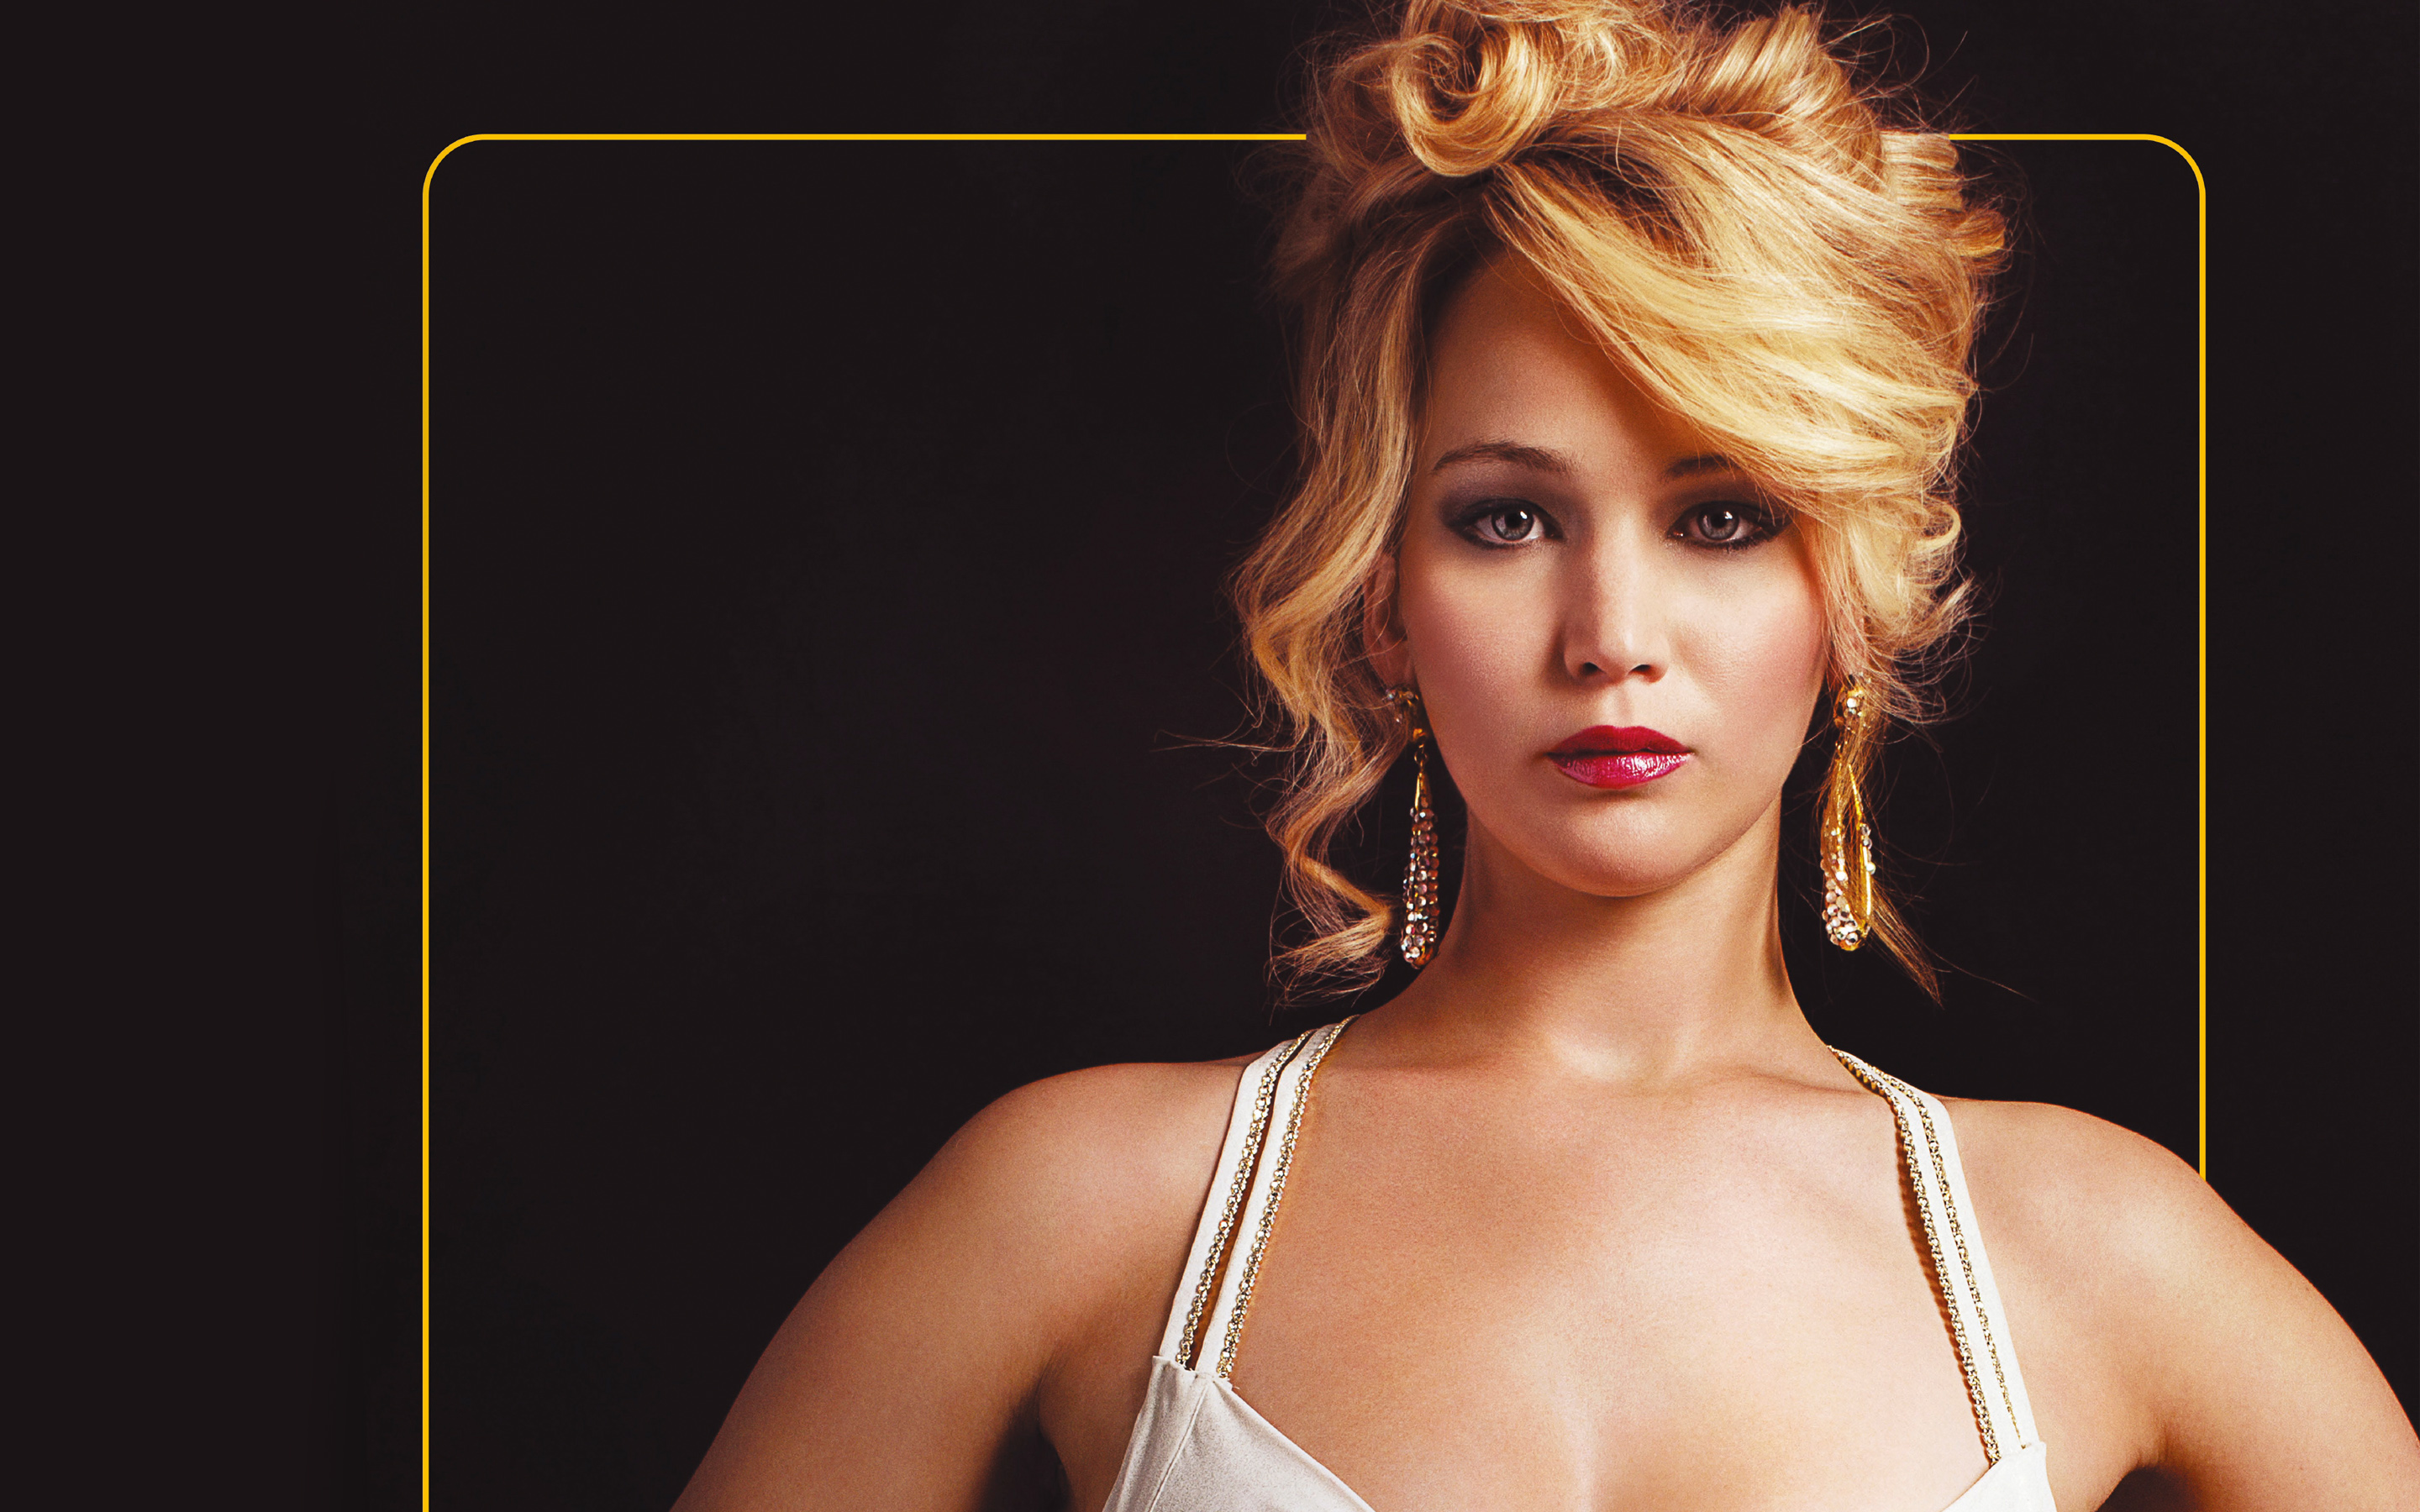 jennifer lawrence wallpaper widescreen - photo #17